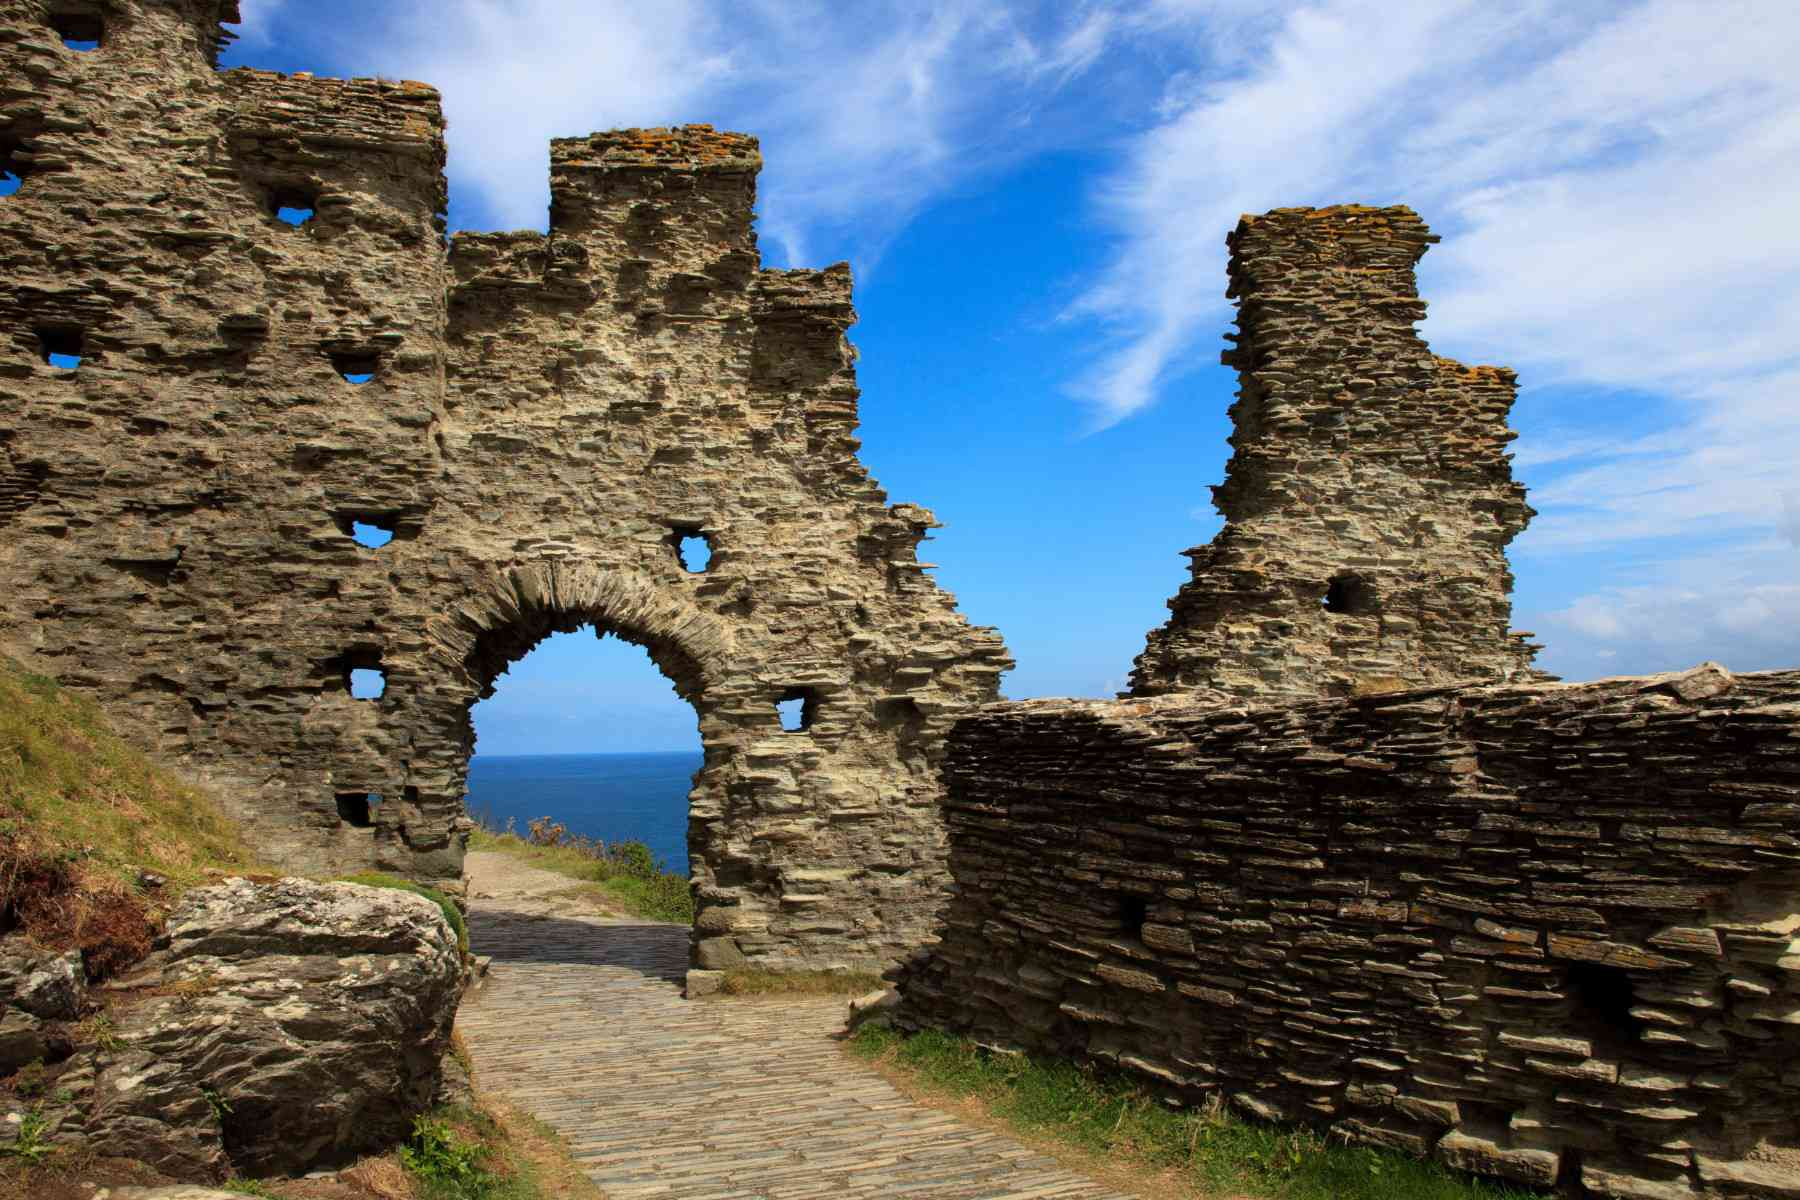 The ruins of Tintagel Castle in England on a partly cloudy day